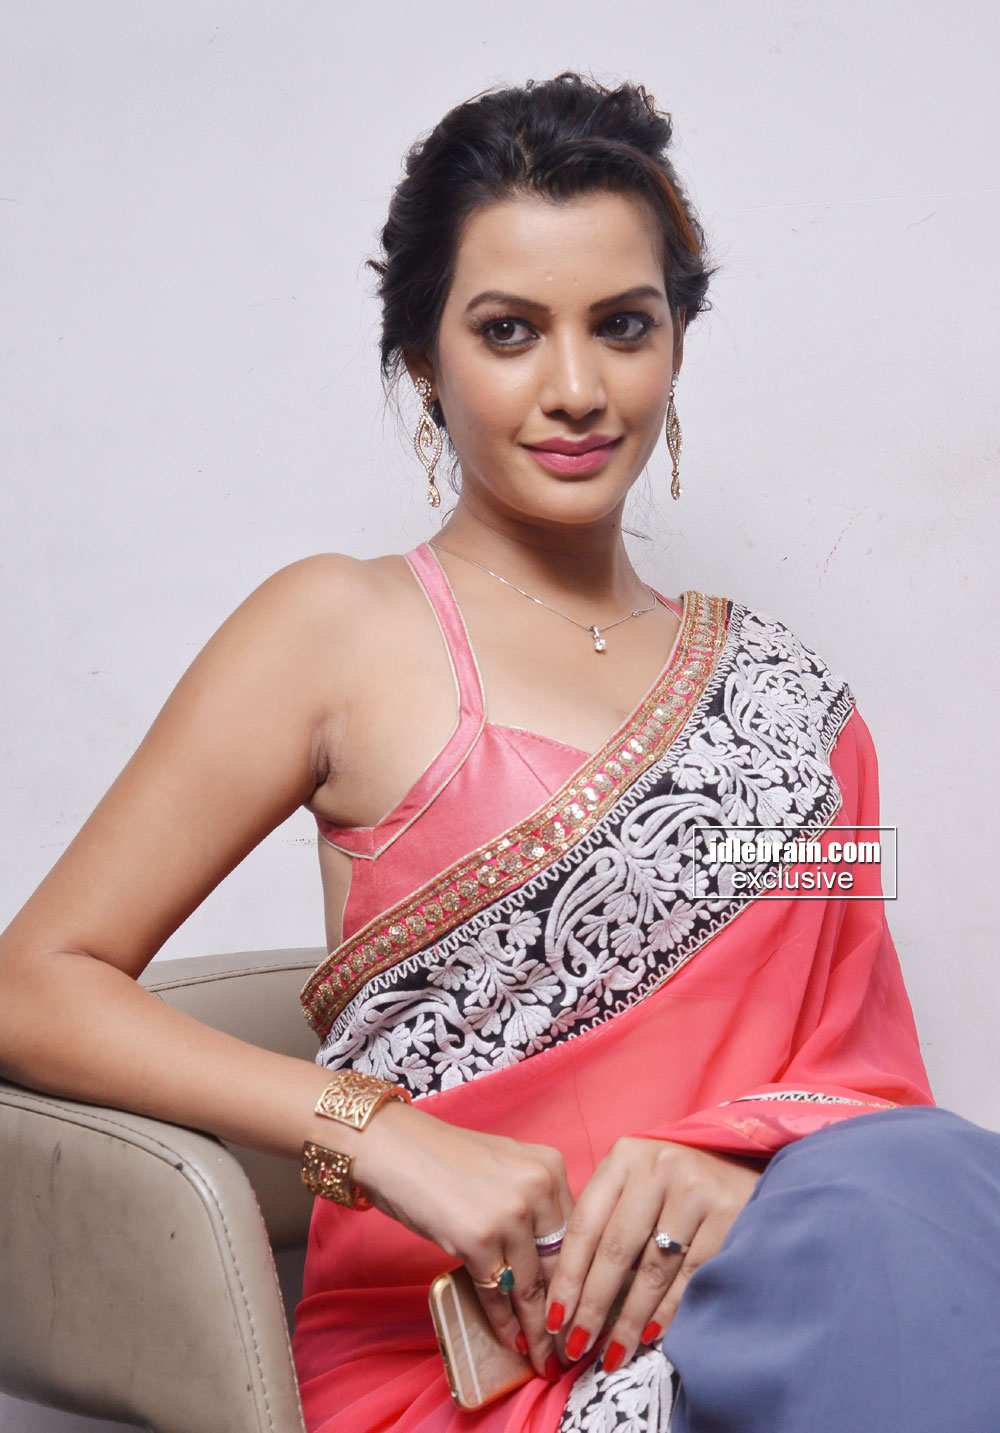 Indian Hot Actress: Actress Diksha Panth Hot & Sexy Stills ...